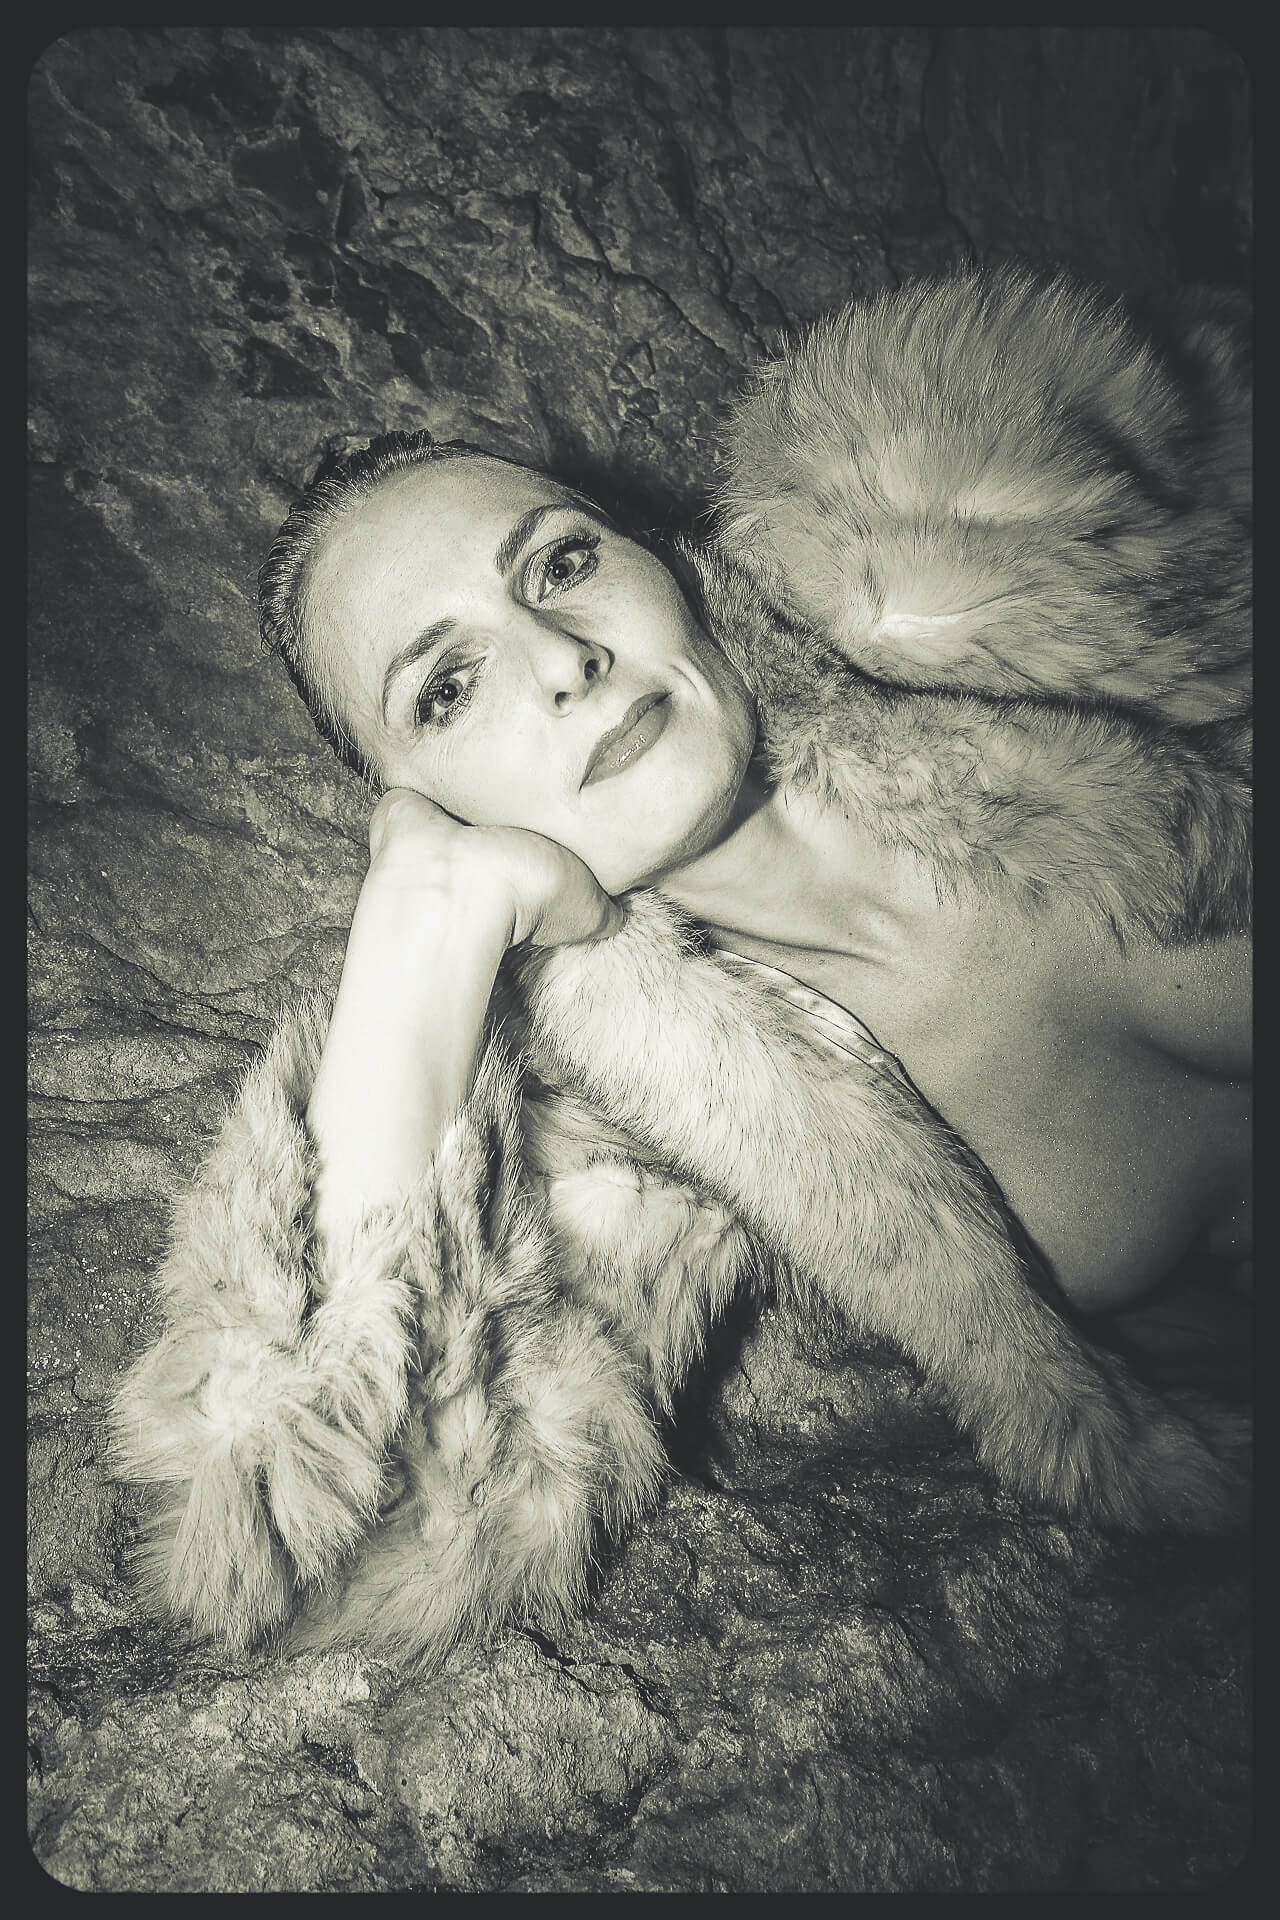 A Black & White 1960's style waist up image of Liz as she leans (with her right arm under her chin) against a cave wall. She wears nothing save a fake fur coat and as she looks into the camera.